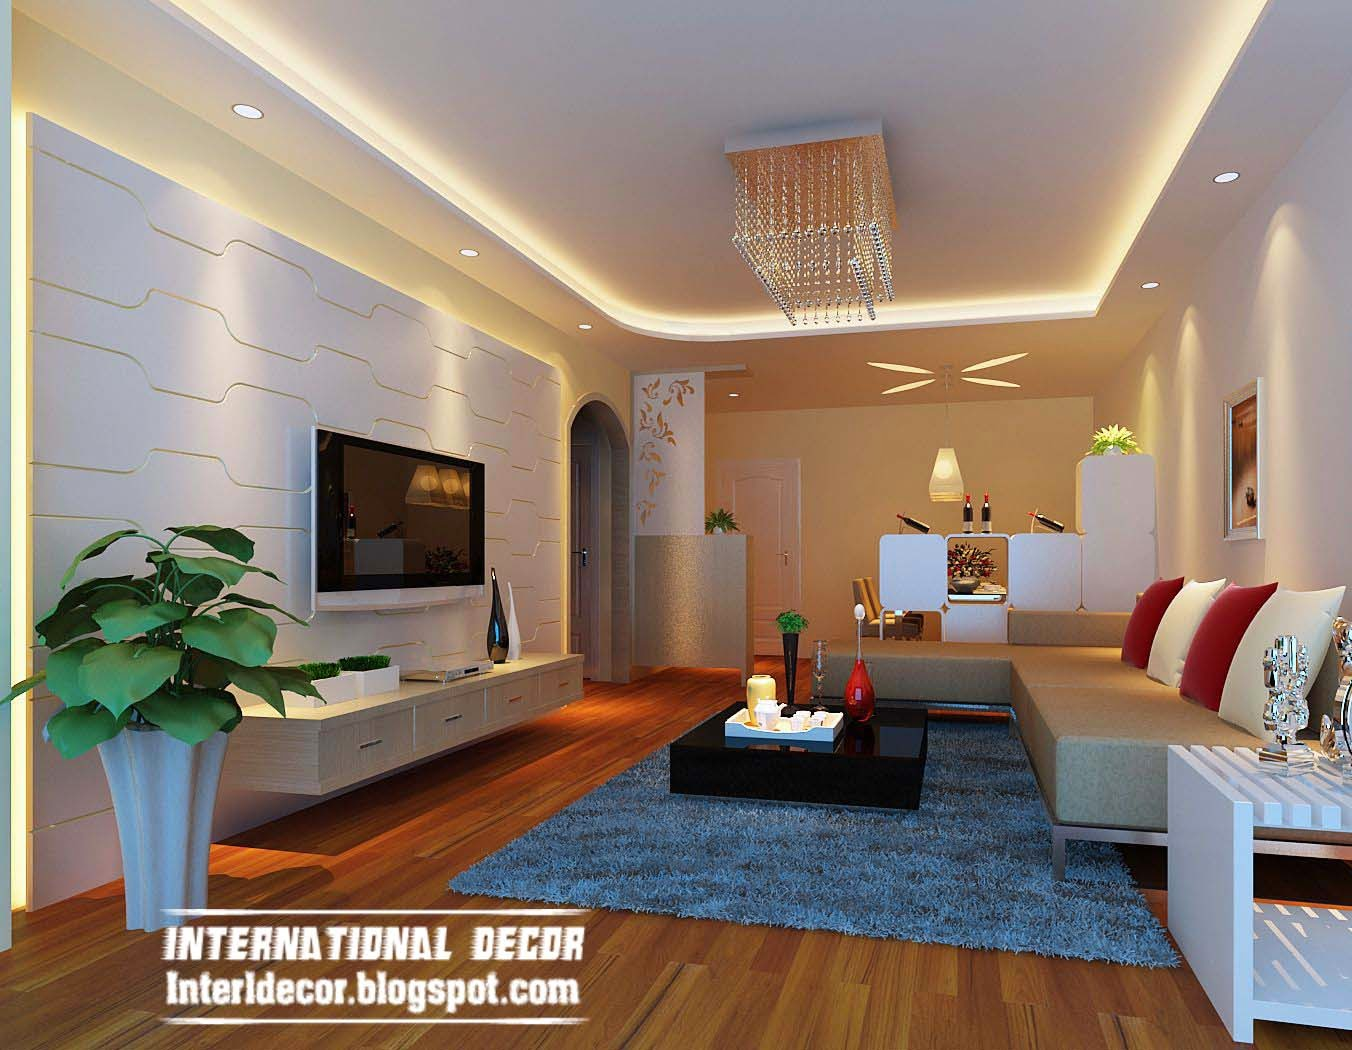 Interior design 2014 top 10 suspended ceiling tiles lighting pop designs for living room 2014 - Living room ceiling interior designs ...